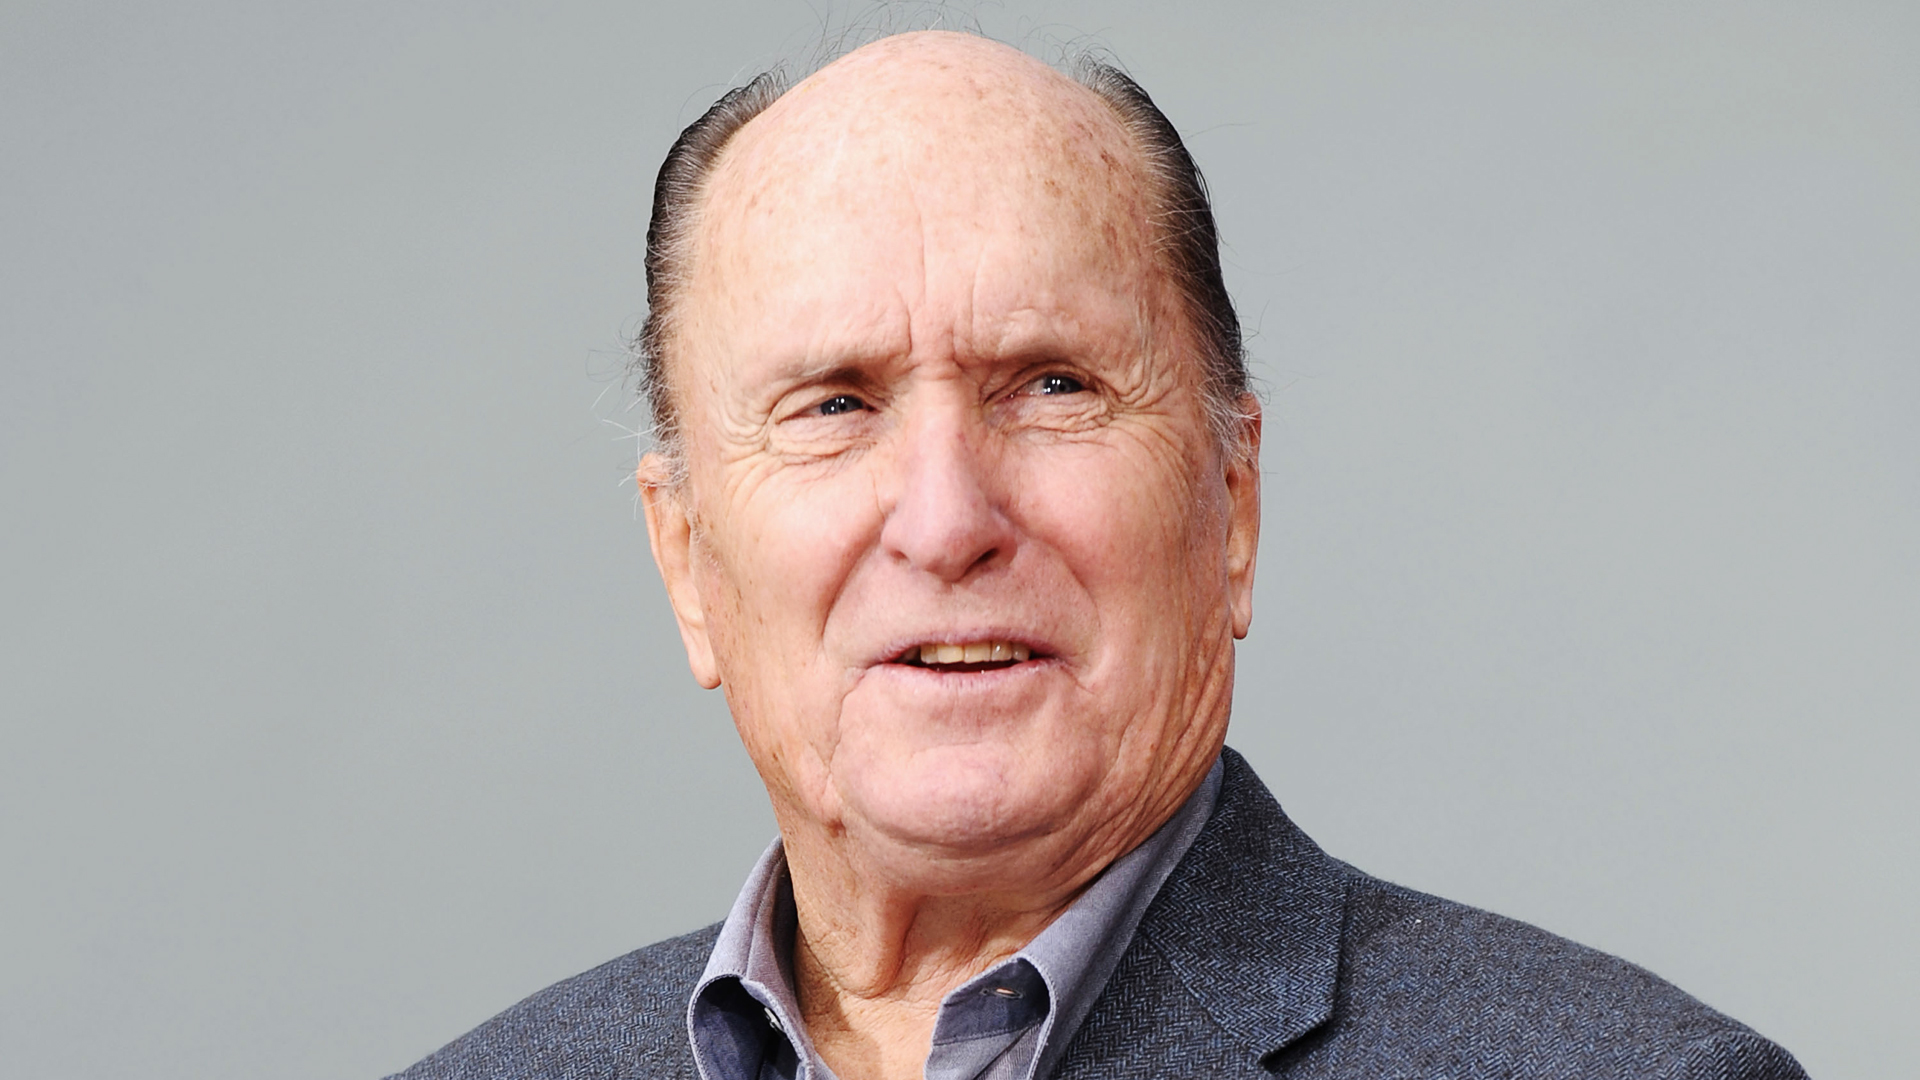 Robert Duvall hd wallpaper Wallpaper